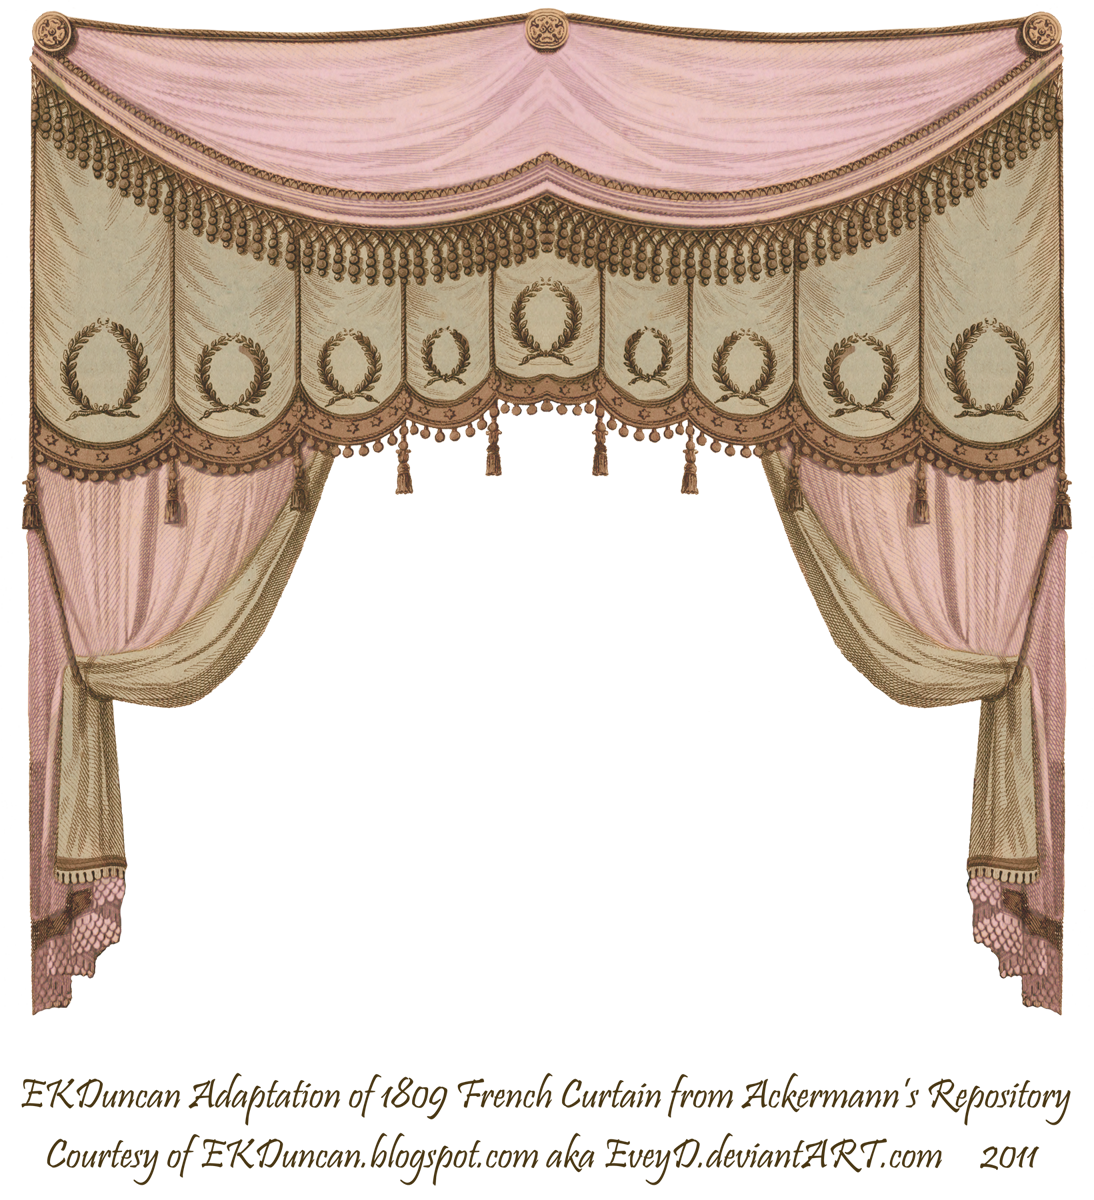 Theatre curtains png - Ekduncan My Fanciful Muse Curtains Set The Stage Regency Beauties From Ackermann S Repository